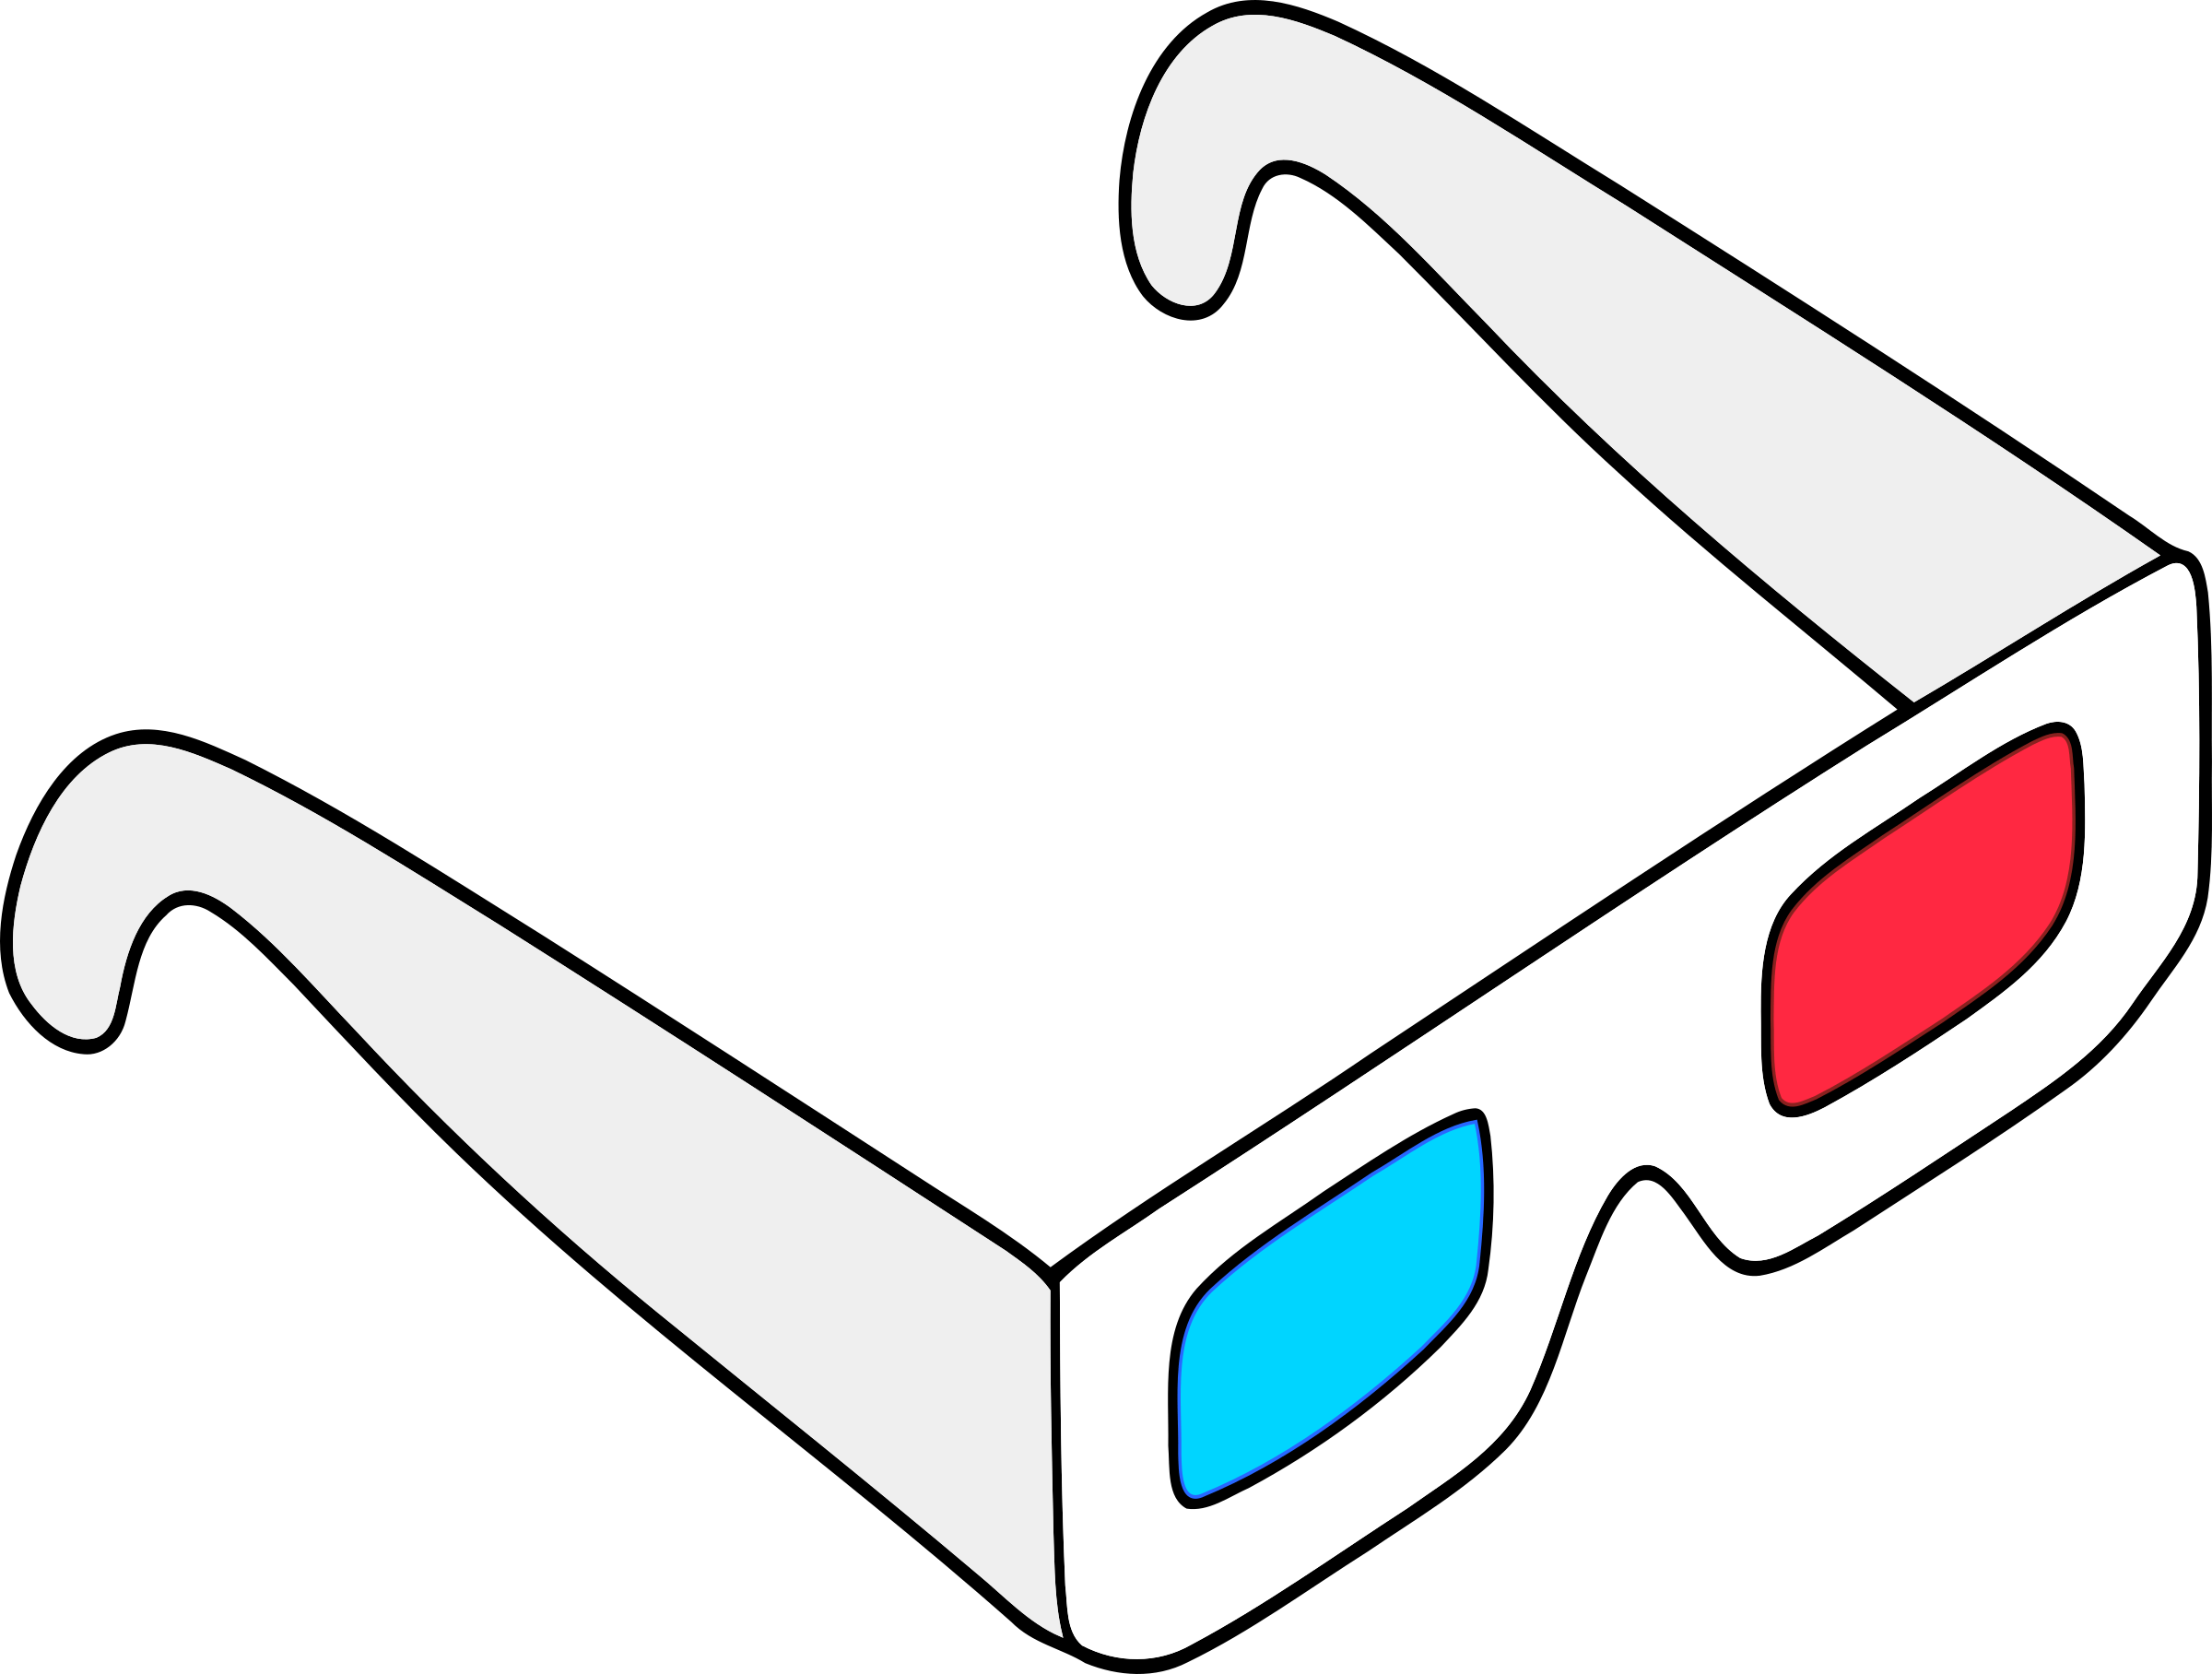 Anaglyph Glasses Colored Vector Clipart Image